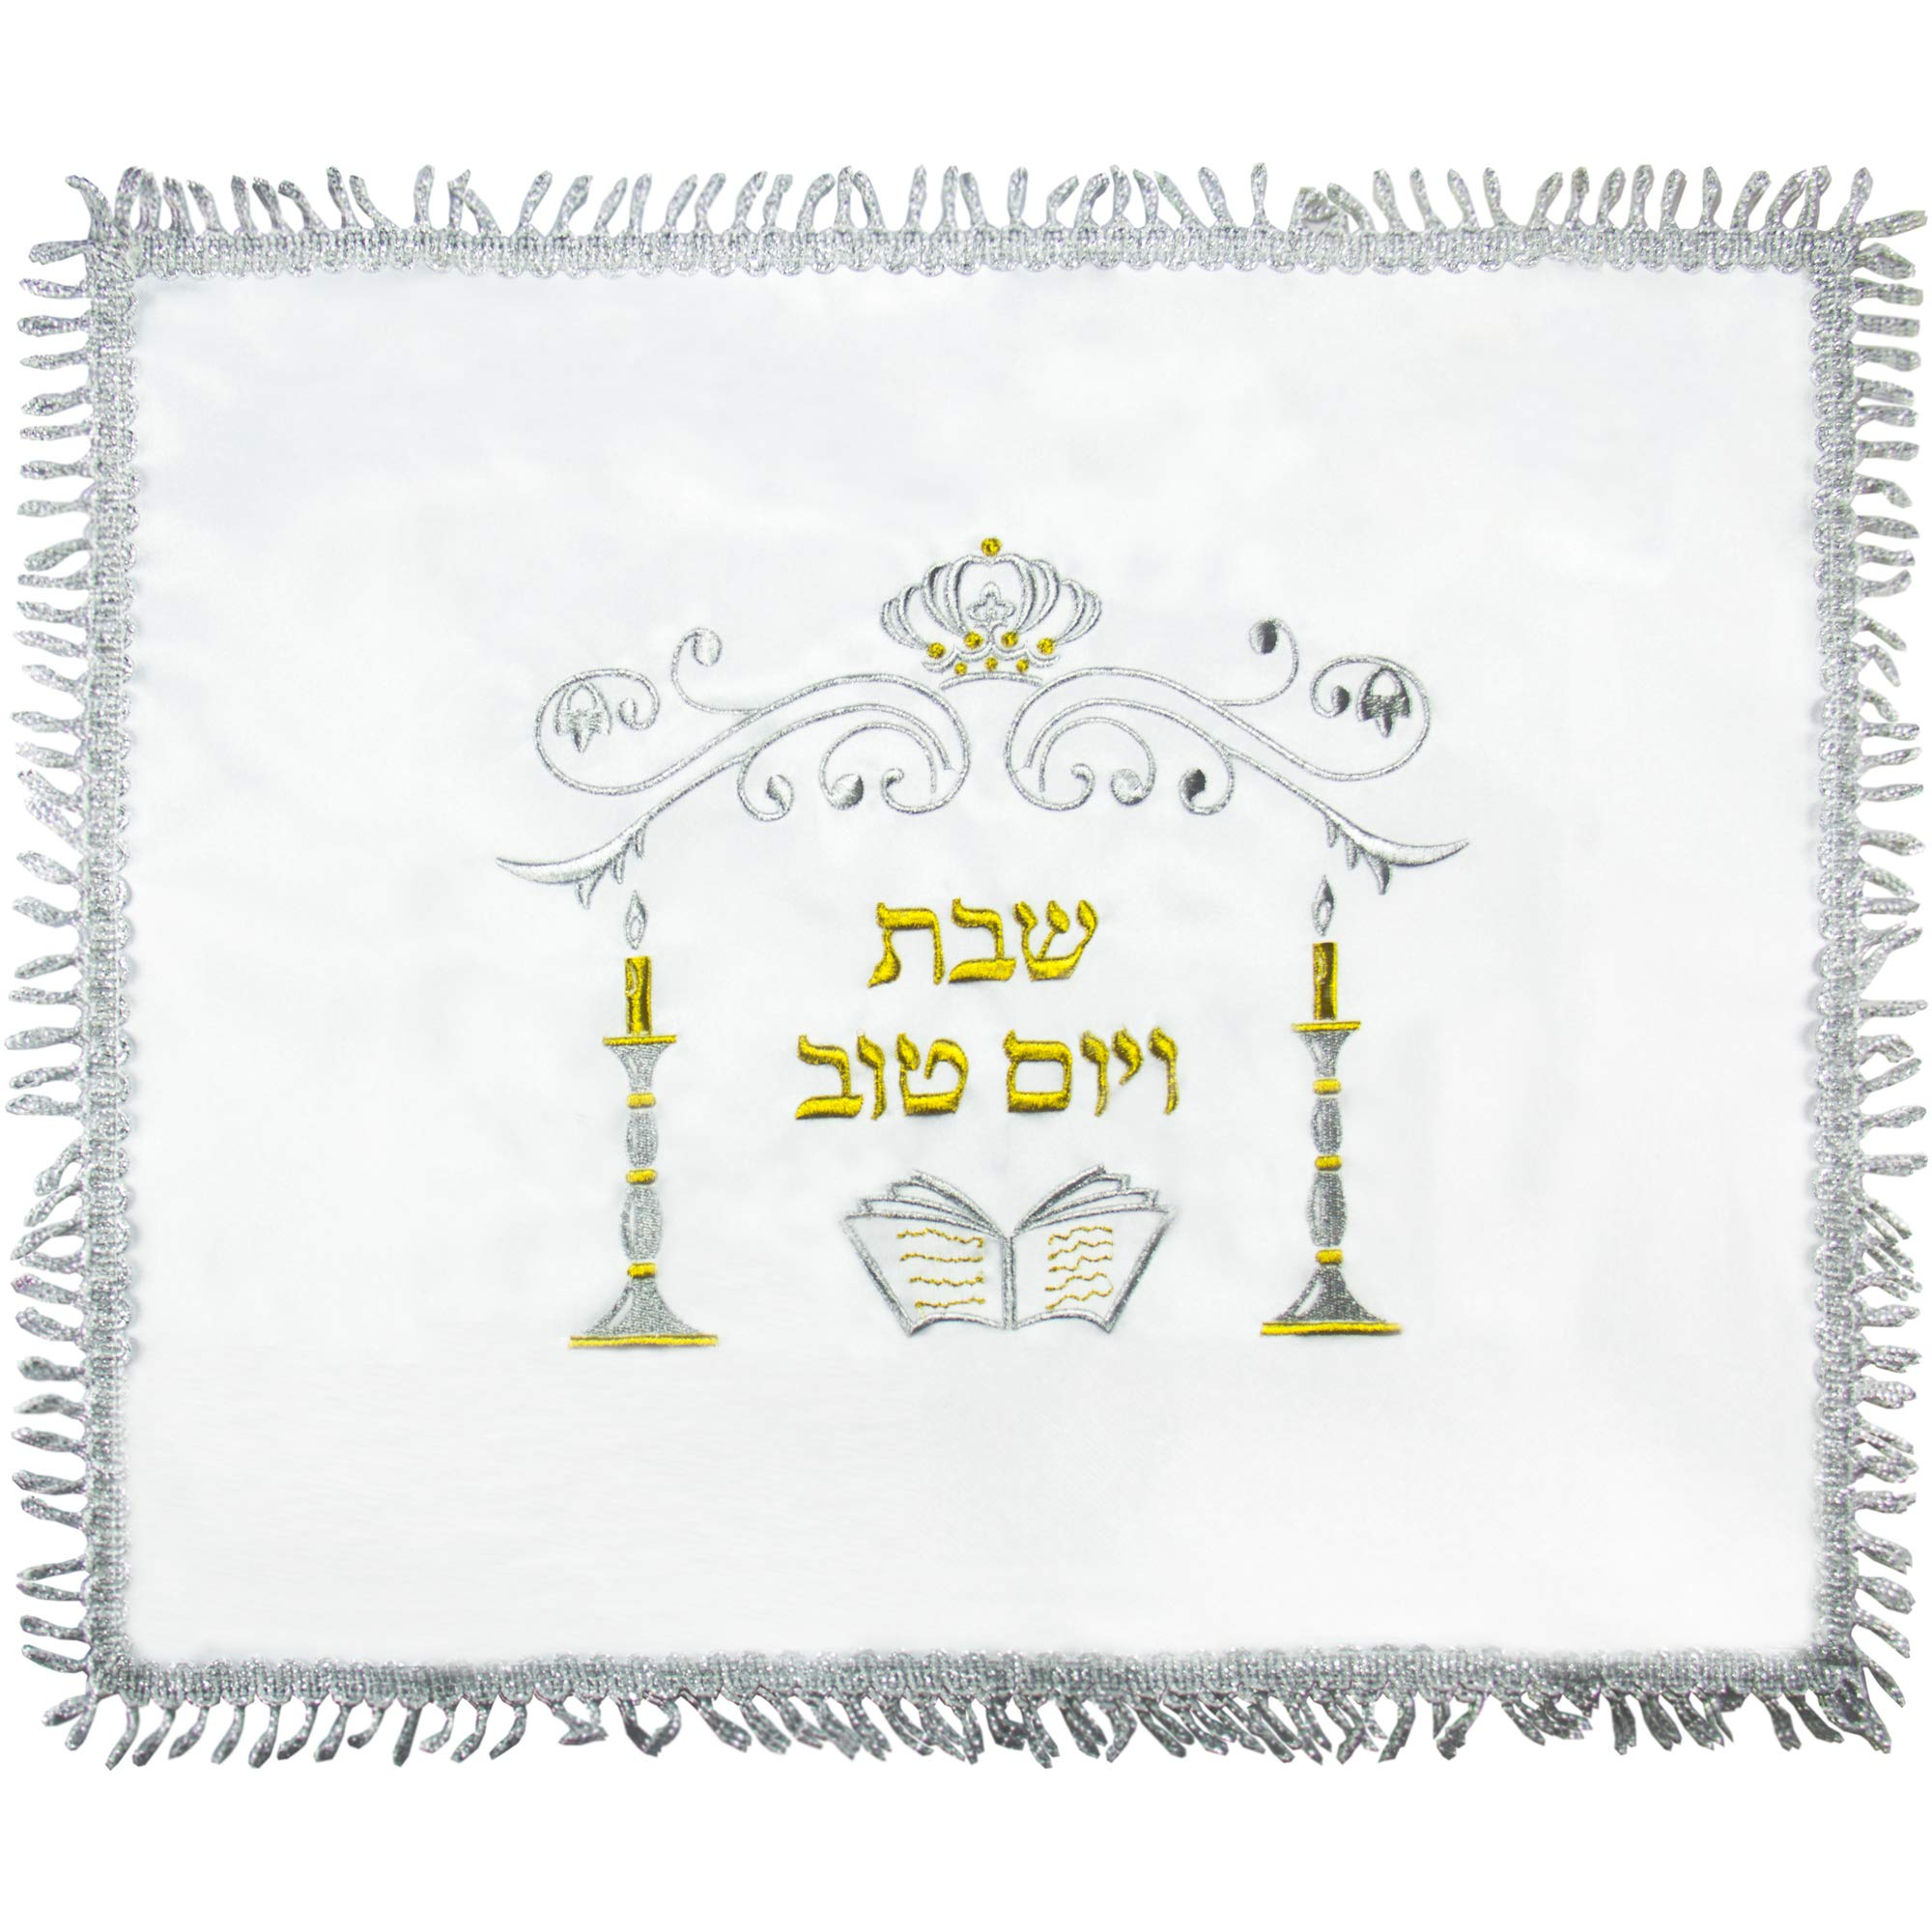 ateret yudaica White Satin Challah Cover for Shabbat Bread (20''/16'') with Shabbat Candlestick Silver & Gold Embroidery, Silver Fringes, from Israel, Nice Gifts.